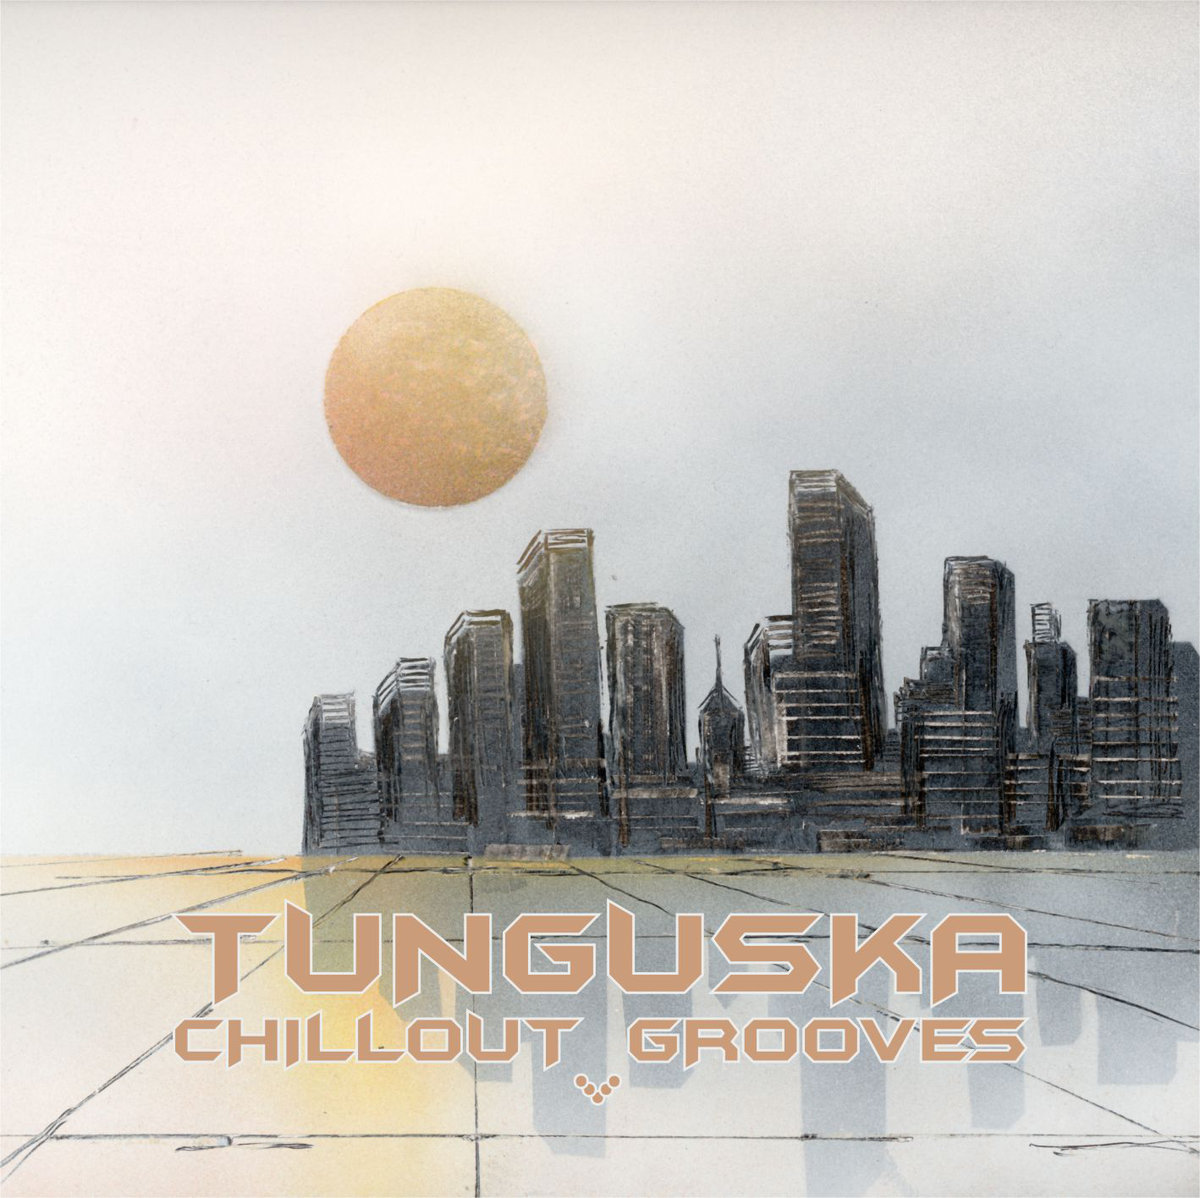 Electro-Nick - For Those Who Like Traveling Staying Home @ 'Tunguska Chillout Grooves - Volume 5' album (electronic, ambient)